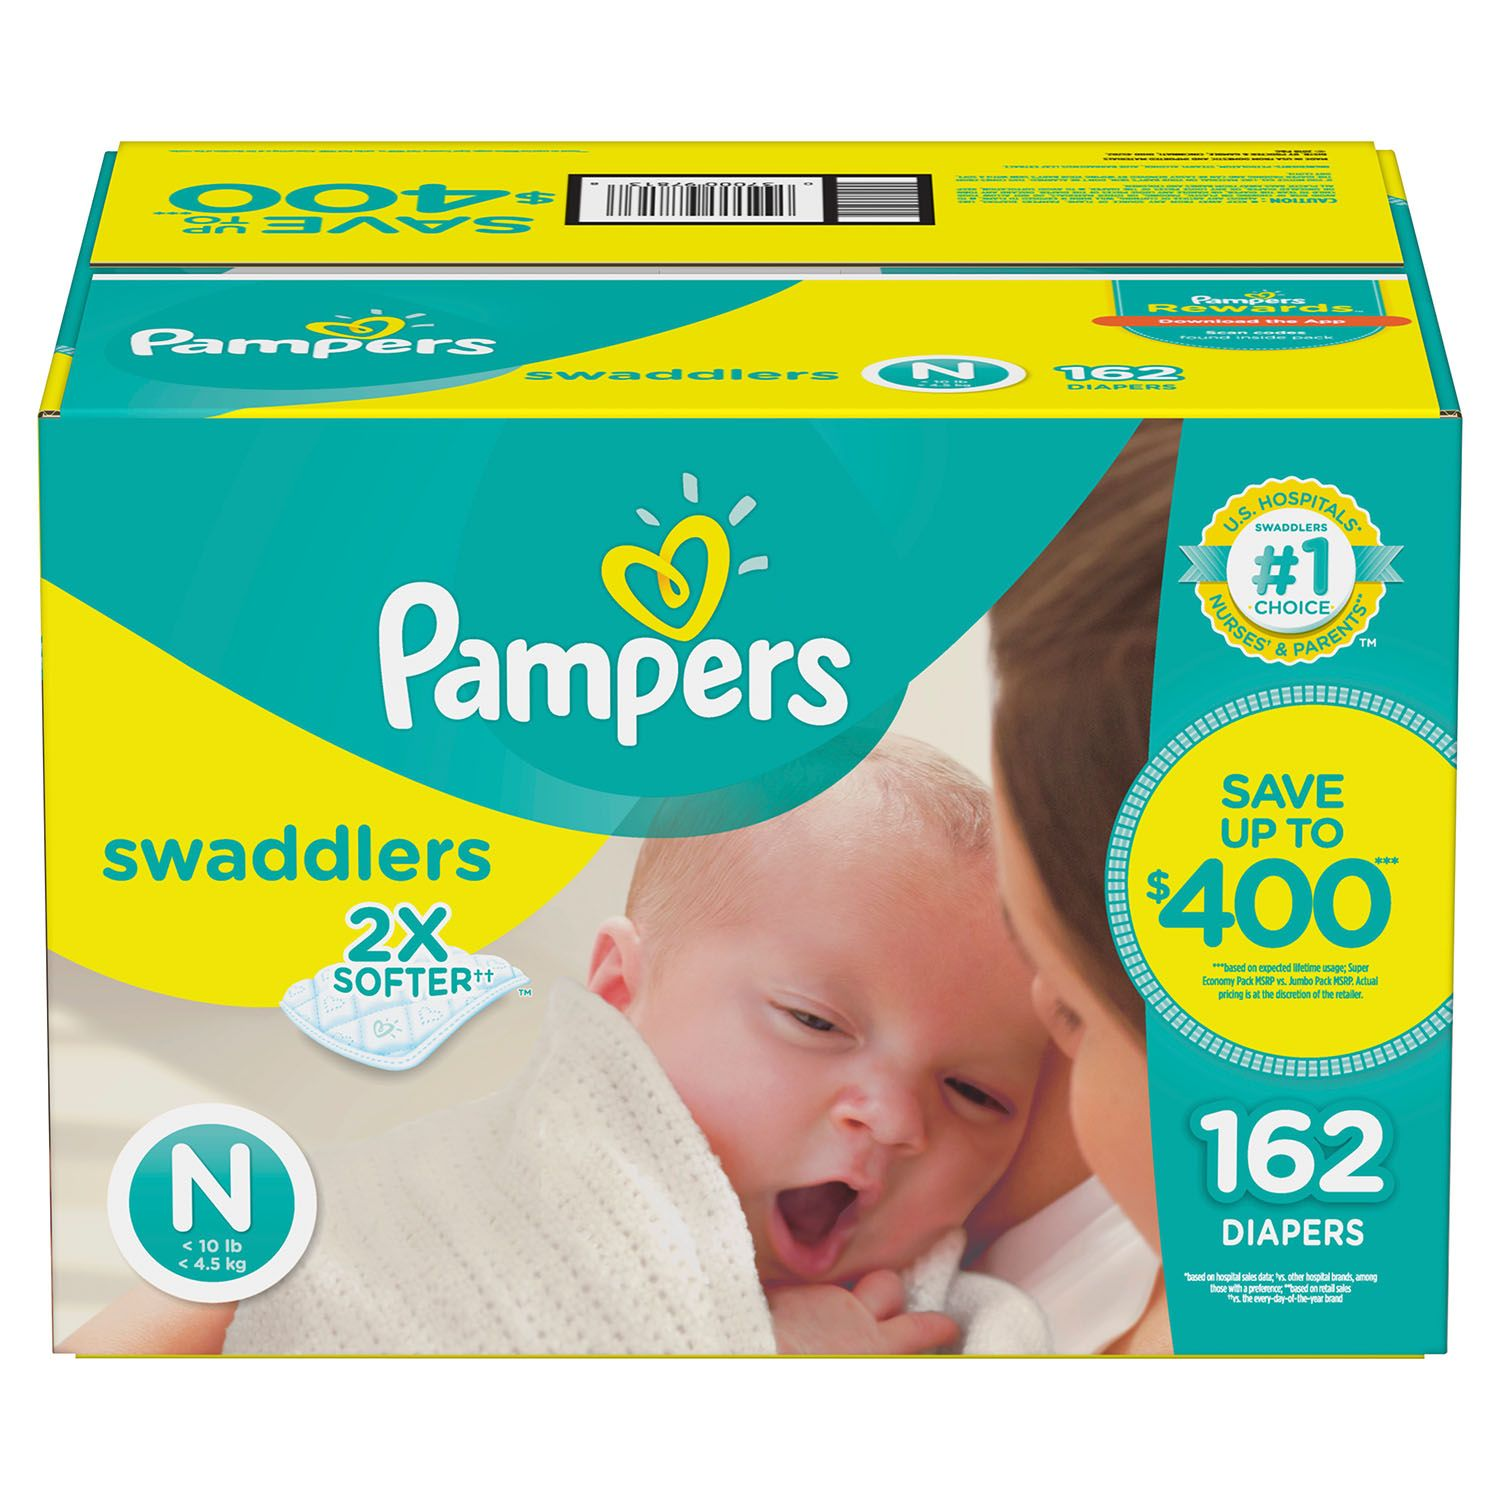 Pampers Swaddlers Diapers Size Newborn -162 ct. (Less than 10 lb.) by Pamperz